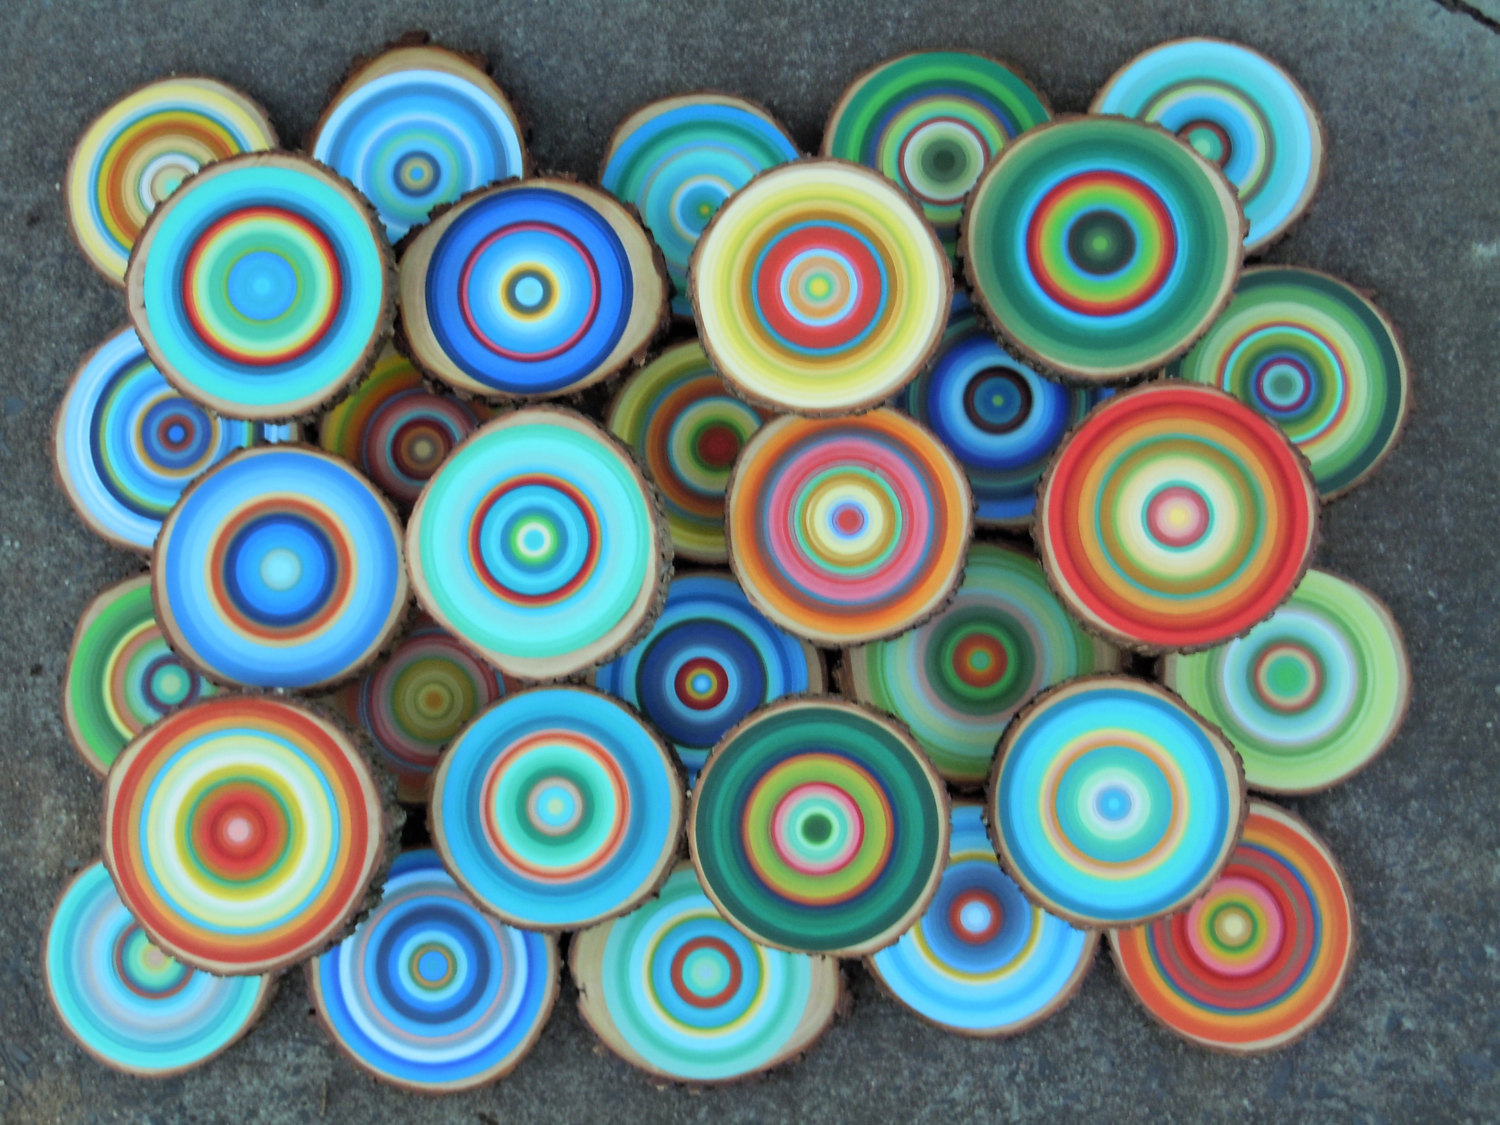 Colorful Art from Wood Slices